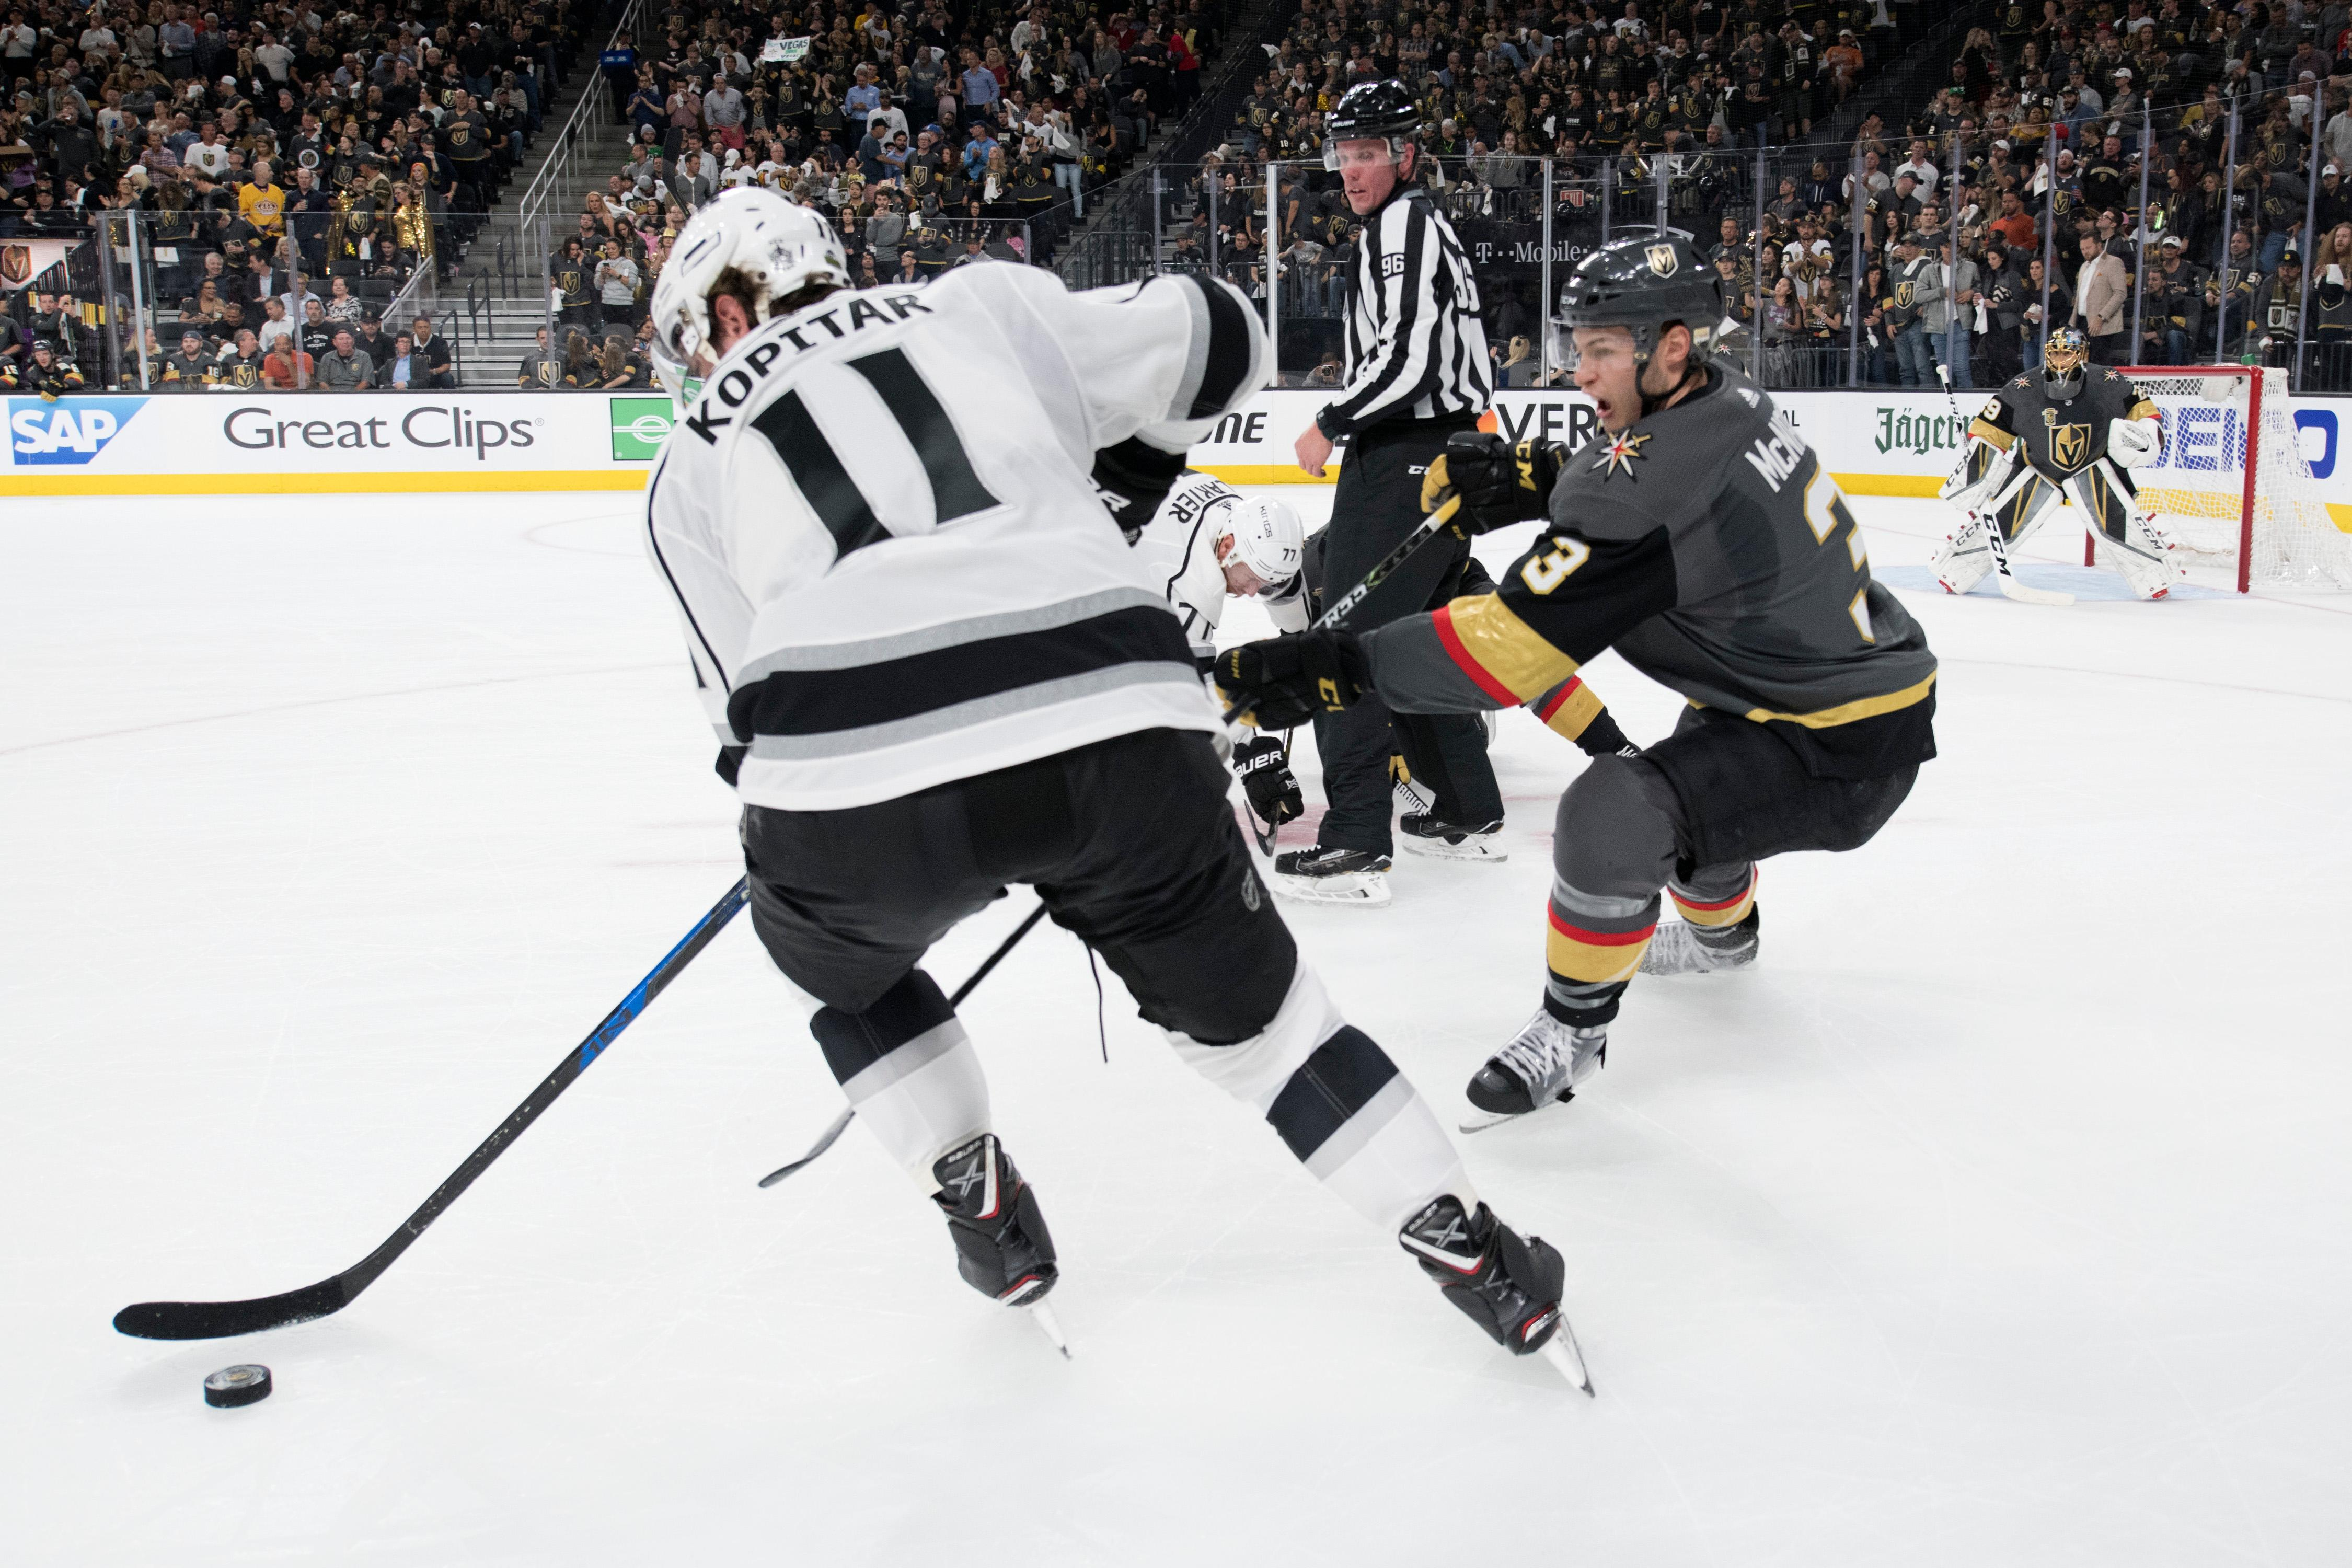 Los Angeles Kings center Anze Kopitar (11) and Vegas Golden Knights defenseman Brayden McNabb (3) chase down the puck during the first period of Game 1 of their NHL hockey first-round playoff series Wednesday, April 11, 2018 at T-Mobile Arena. The Knights won 1-0. CREDIT: Sam Morris/Las Vegas News Bureau